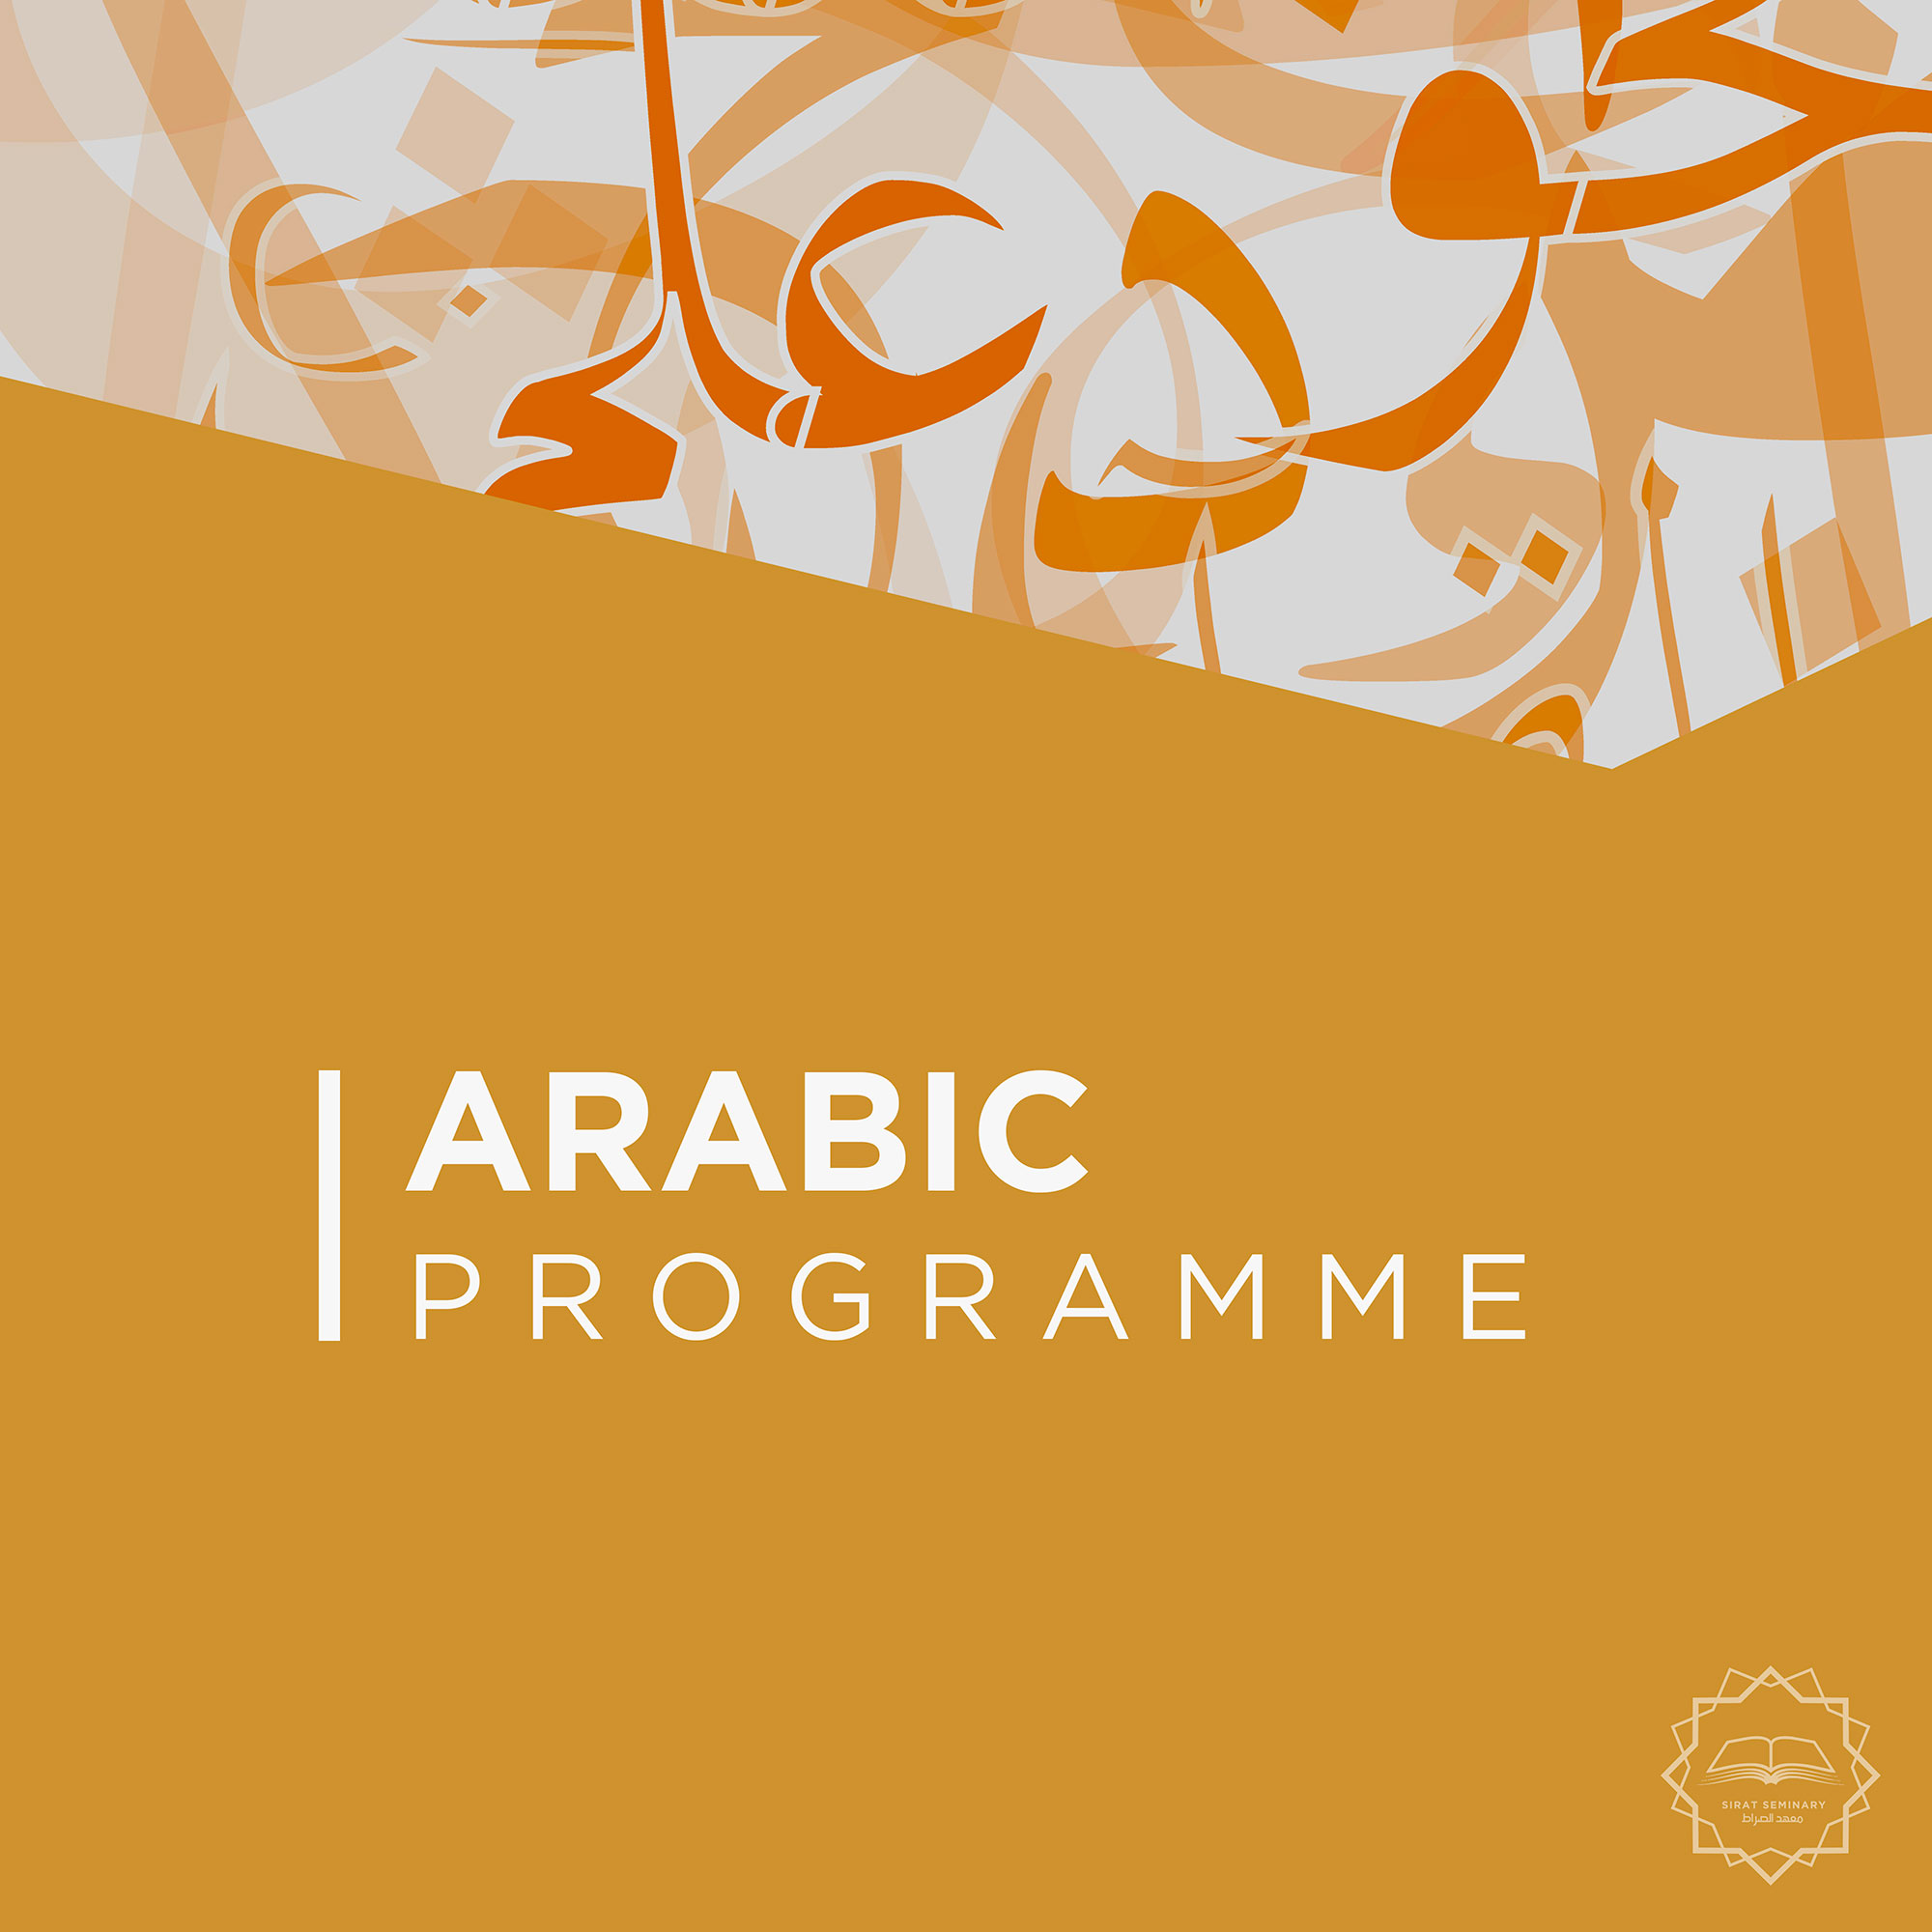 arabic_programme_featured